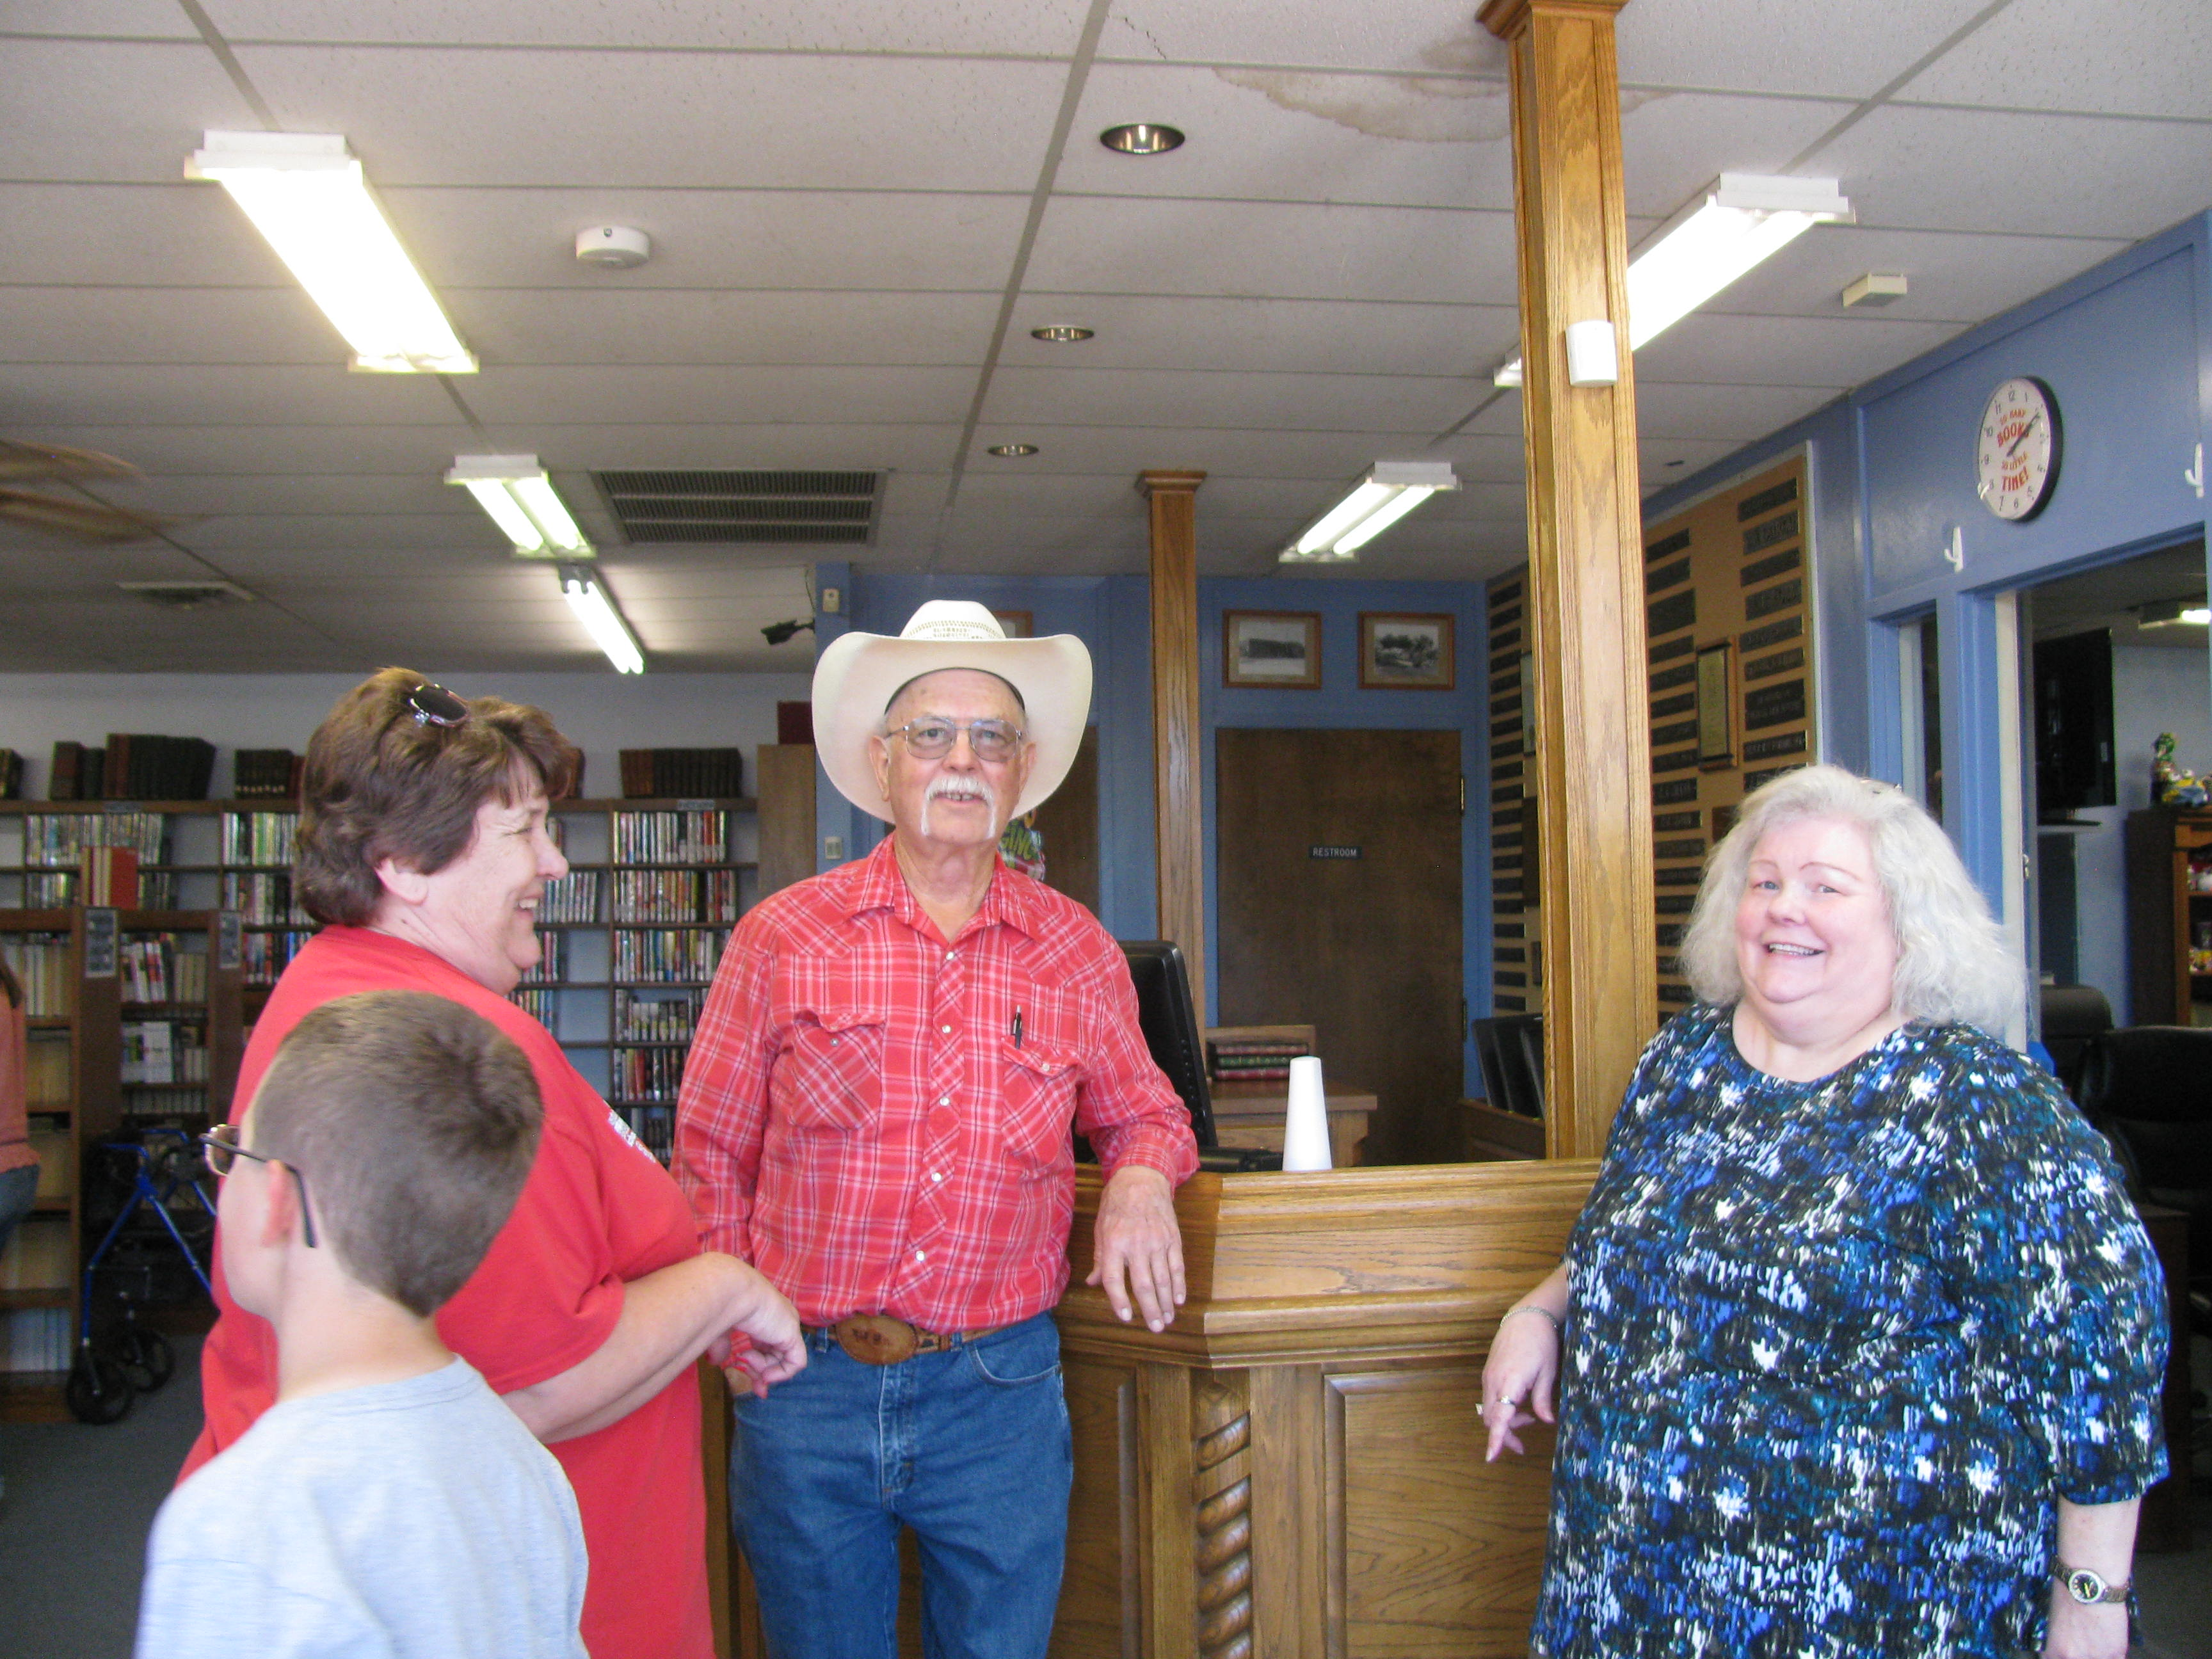 Stacy is visiting with the William and Joyce Light and Gage Rodgers.JPG